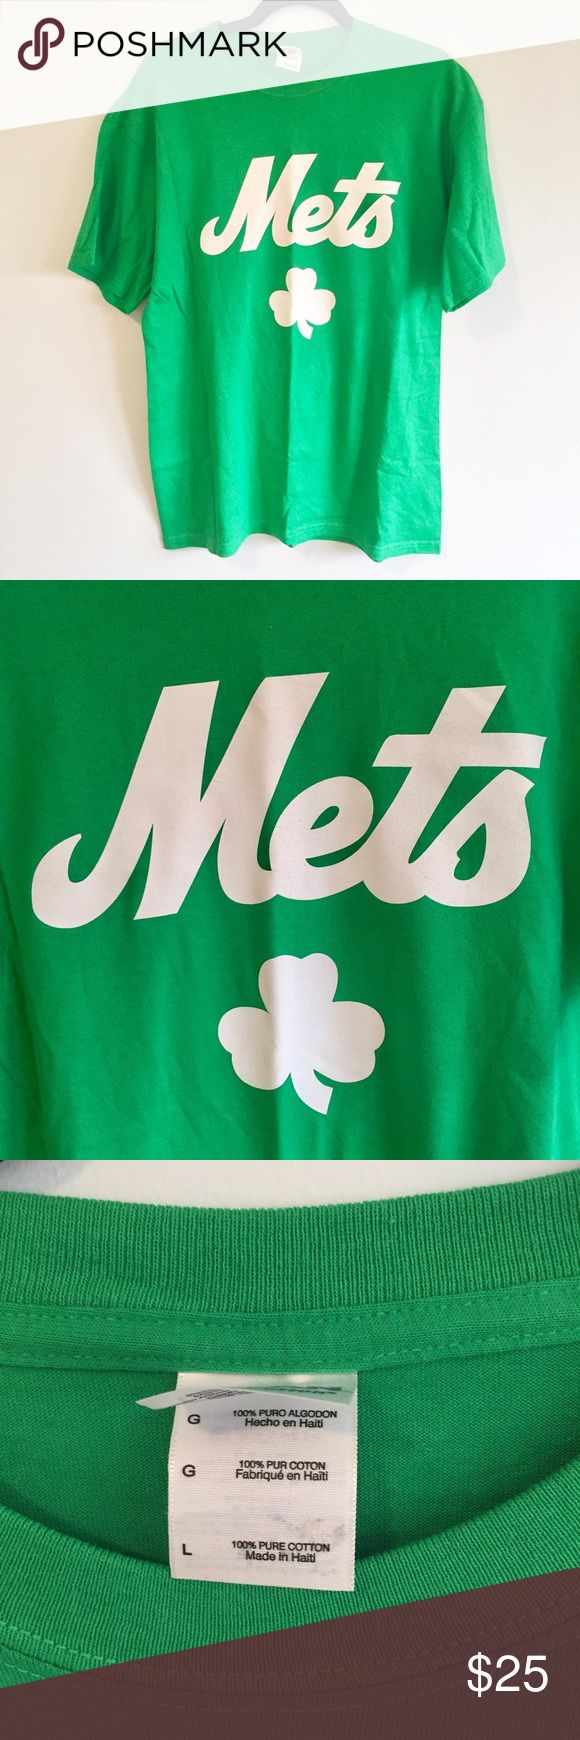 """NWOT - T7Line Mets T-shirt Brand new never worn but has 2 marks on the back of the shirt (see last 2 photos). Purchased directly from The 7 Line Army website - shirt style is no longer in print. Measures 21"""" shoulders 30"""" long. Shirts Tees - Short Sleeve"""